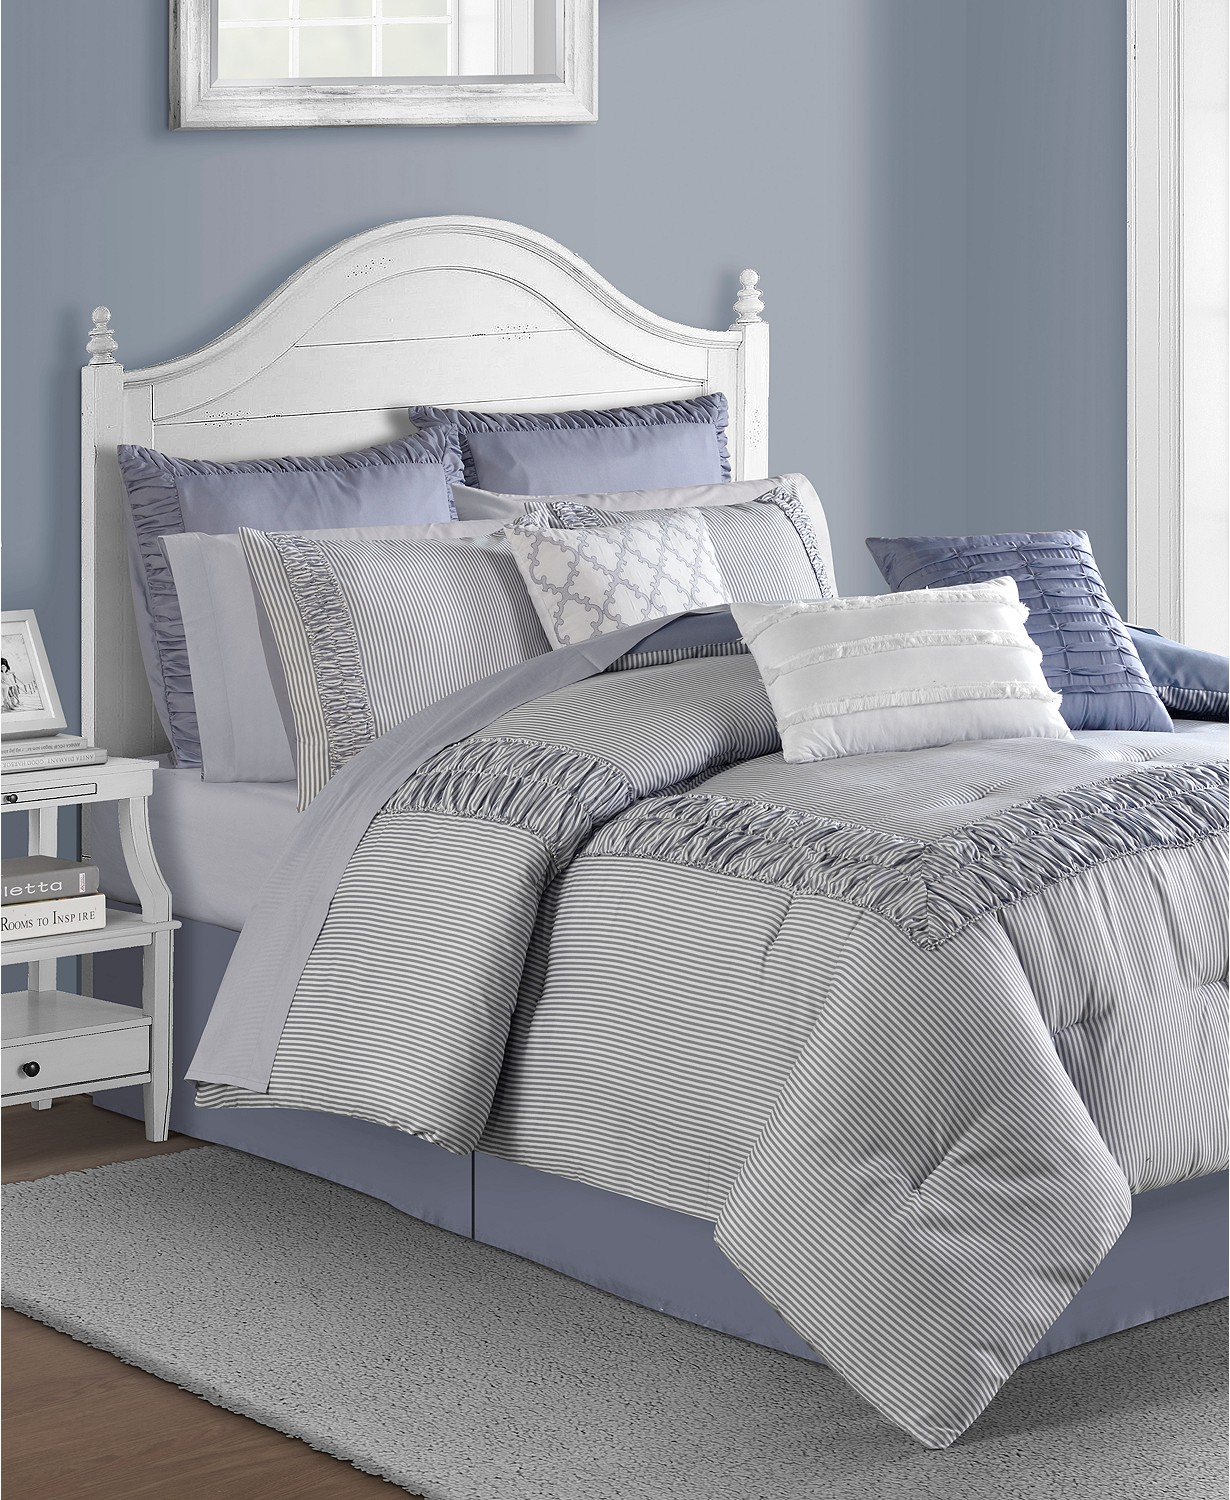 (70% OFF Deal) Morgan 14-Pc. King Comforter Set $137.99